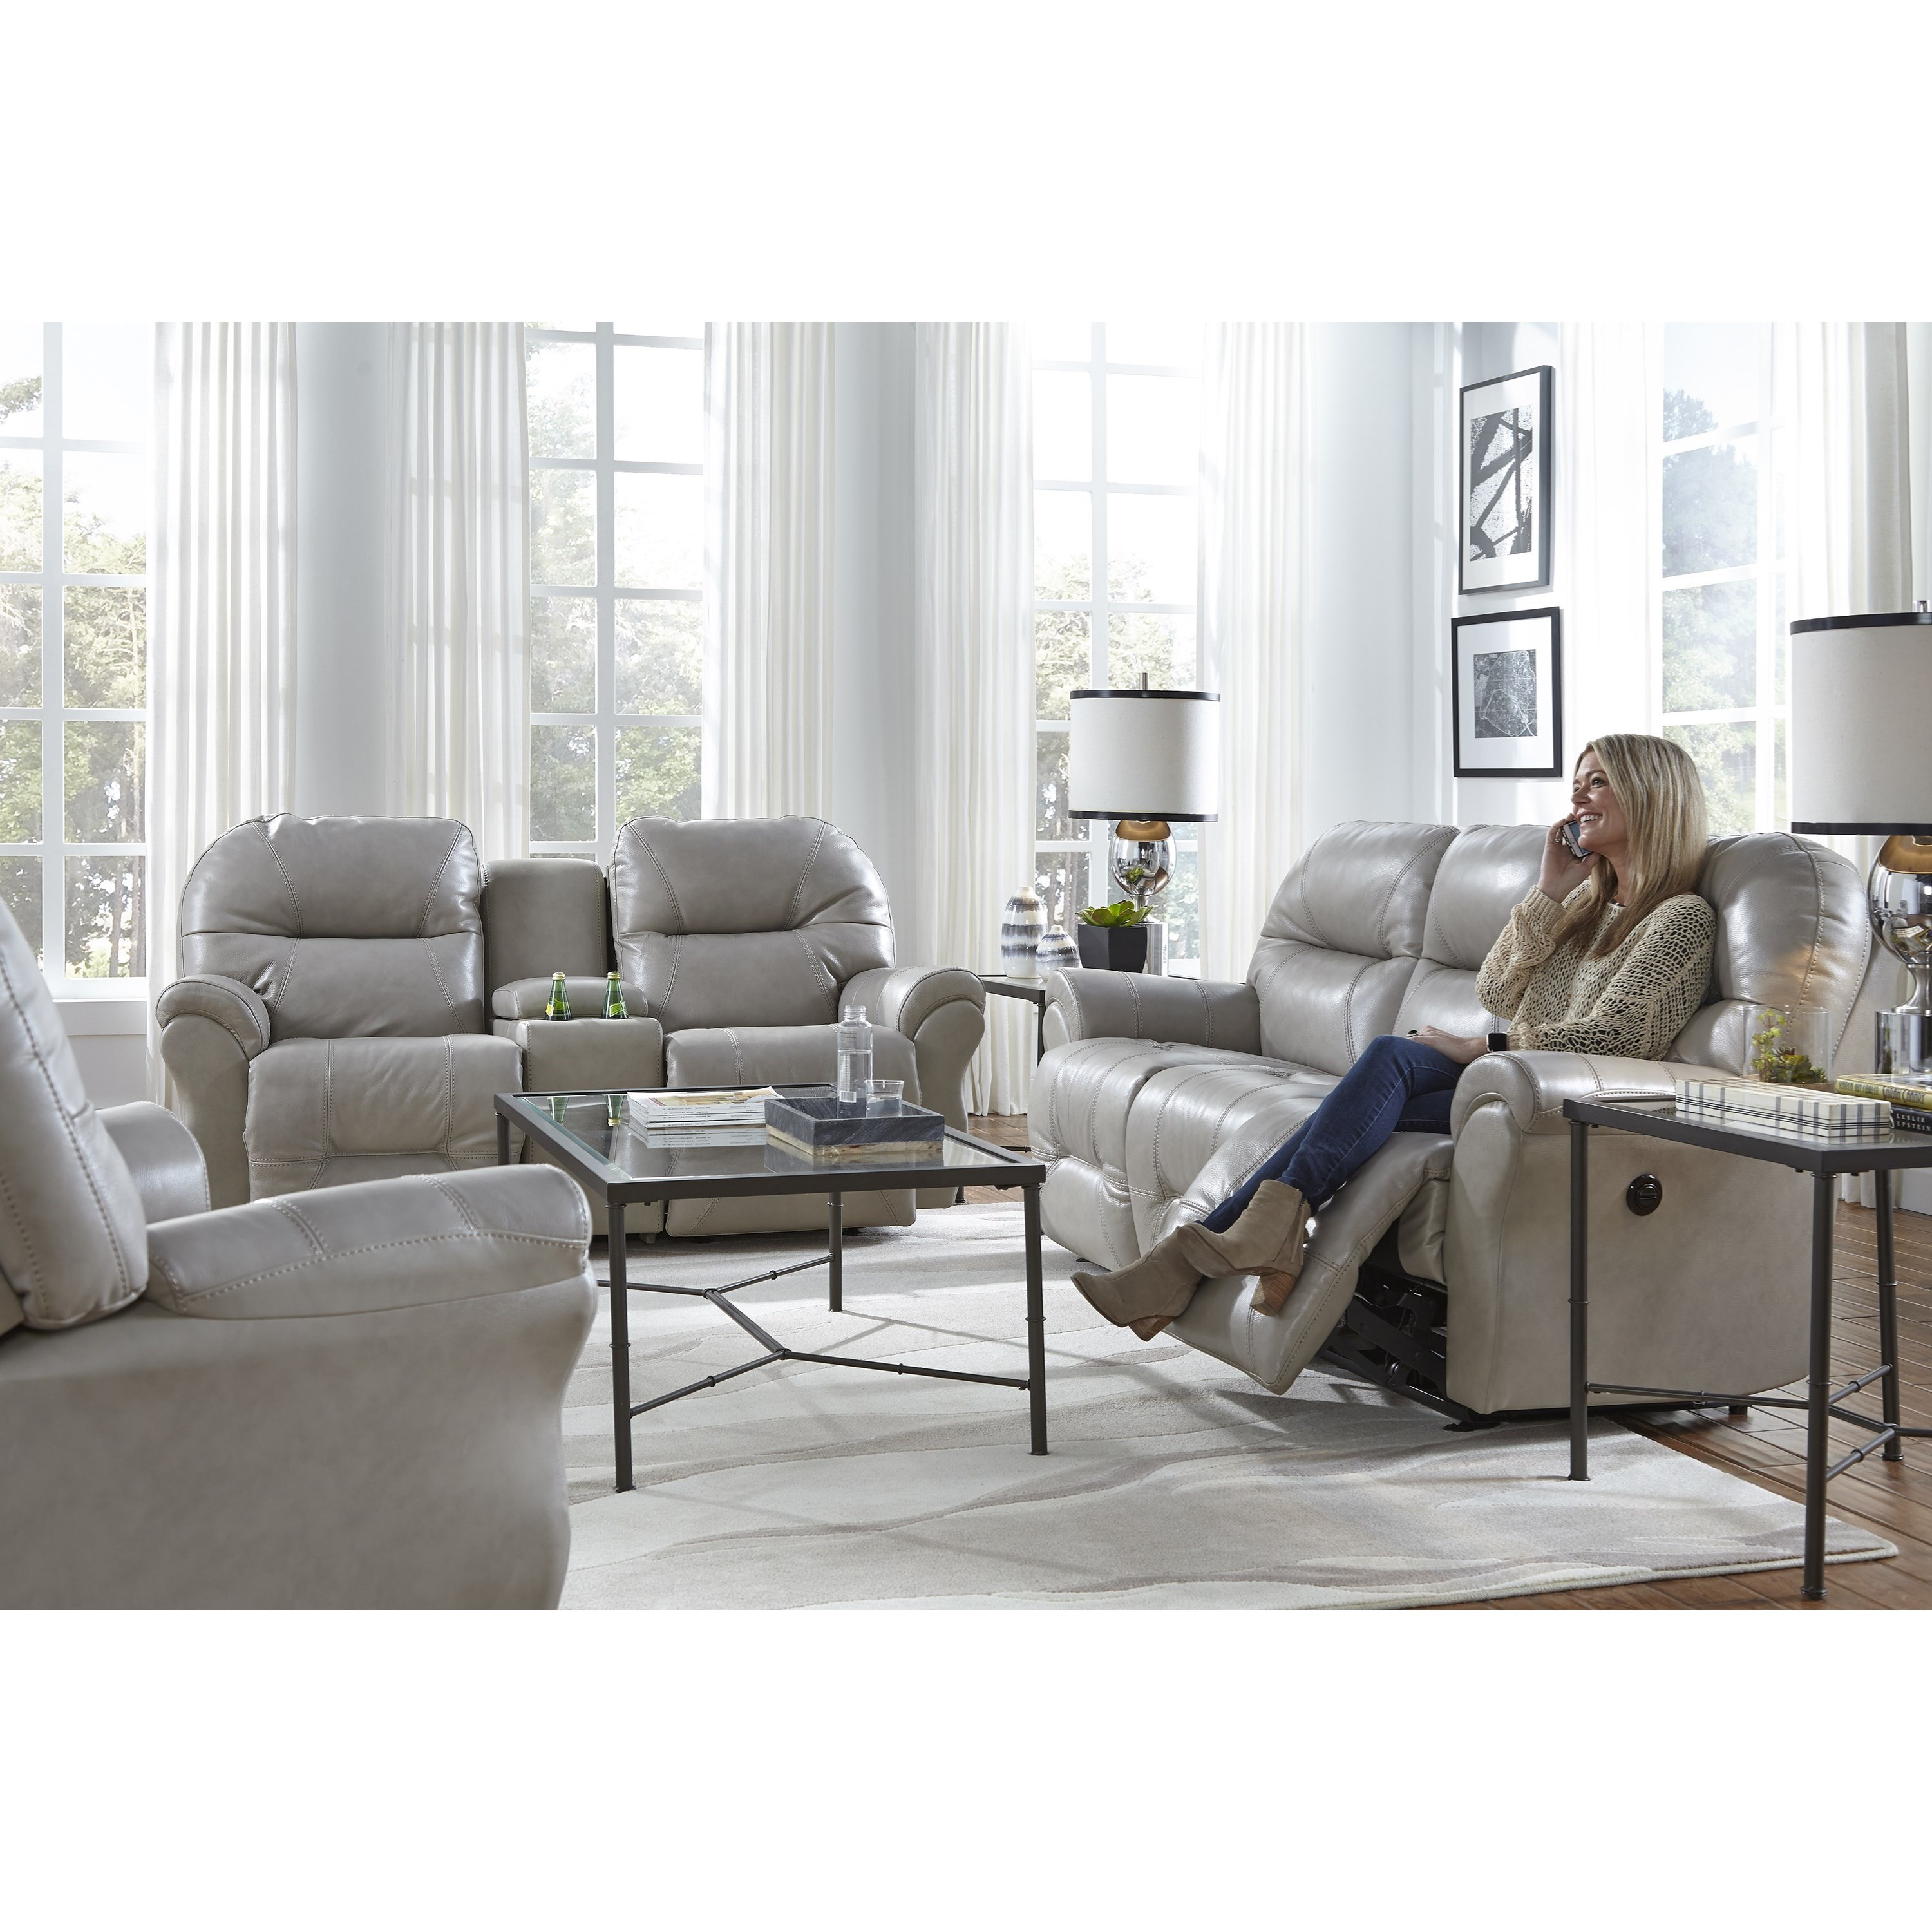 Bodie Reclining Living Room Group by Best Home Furnishings at SuperStore